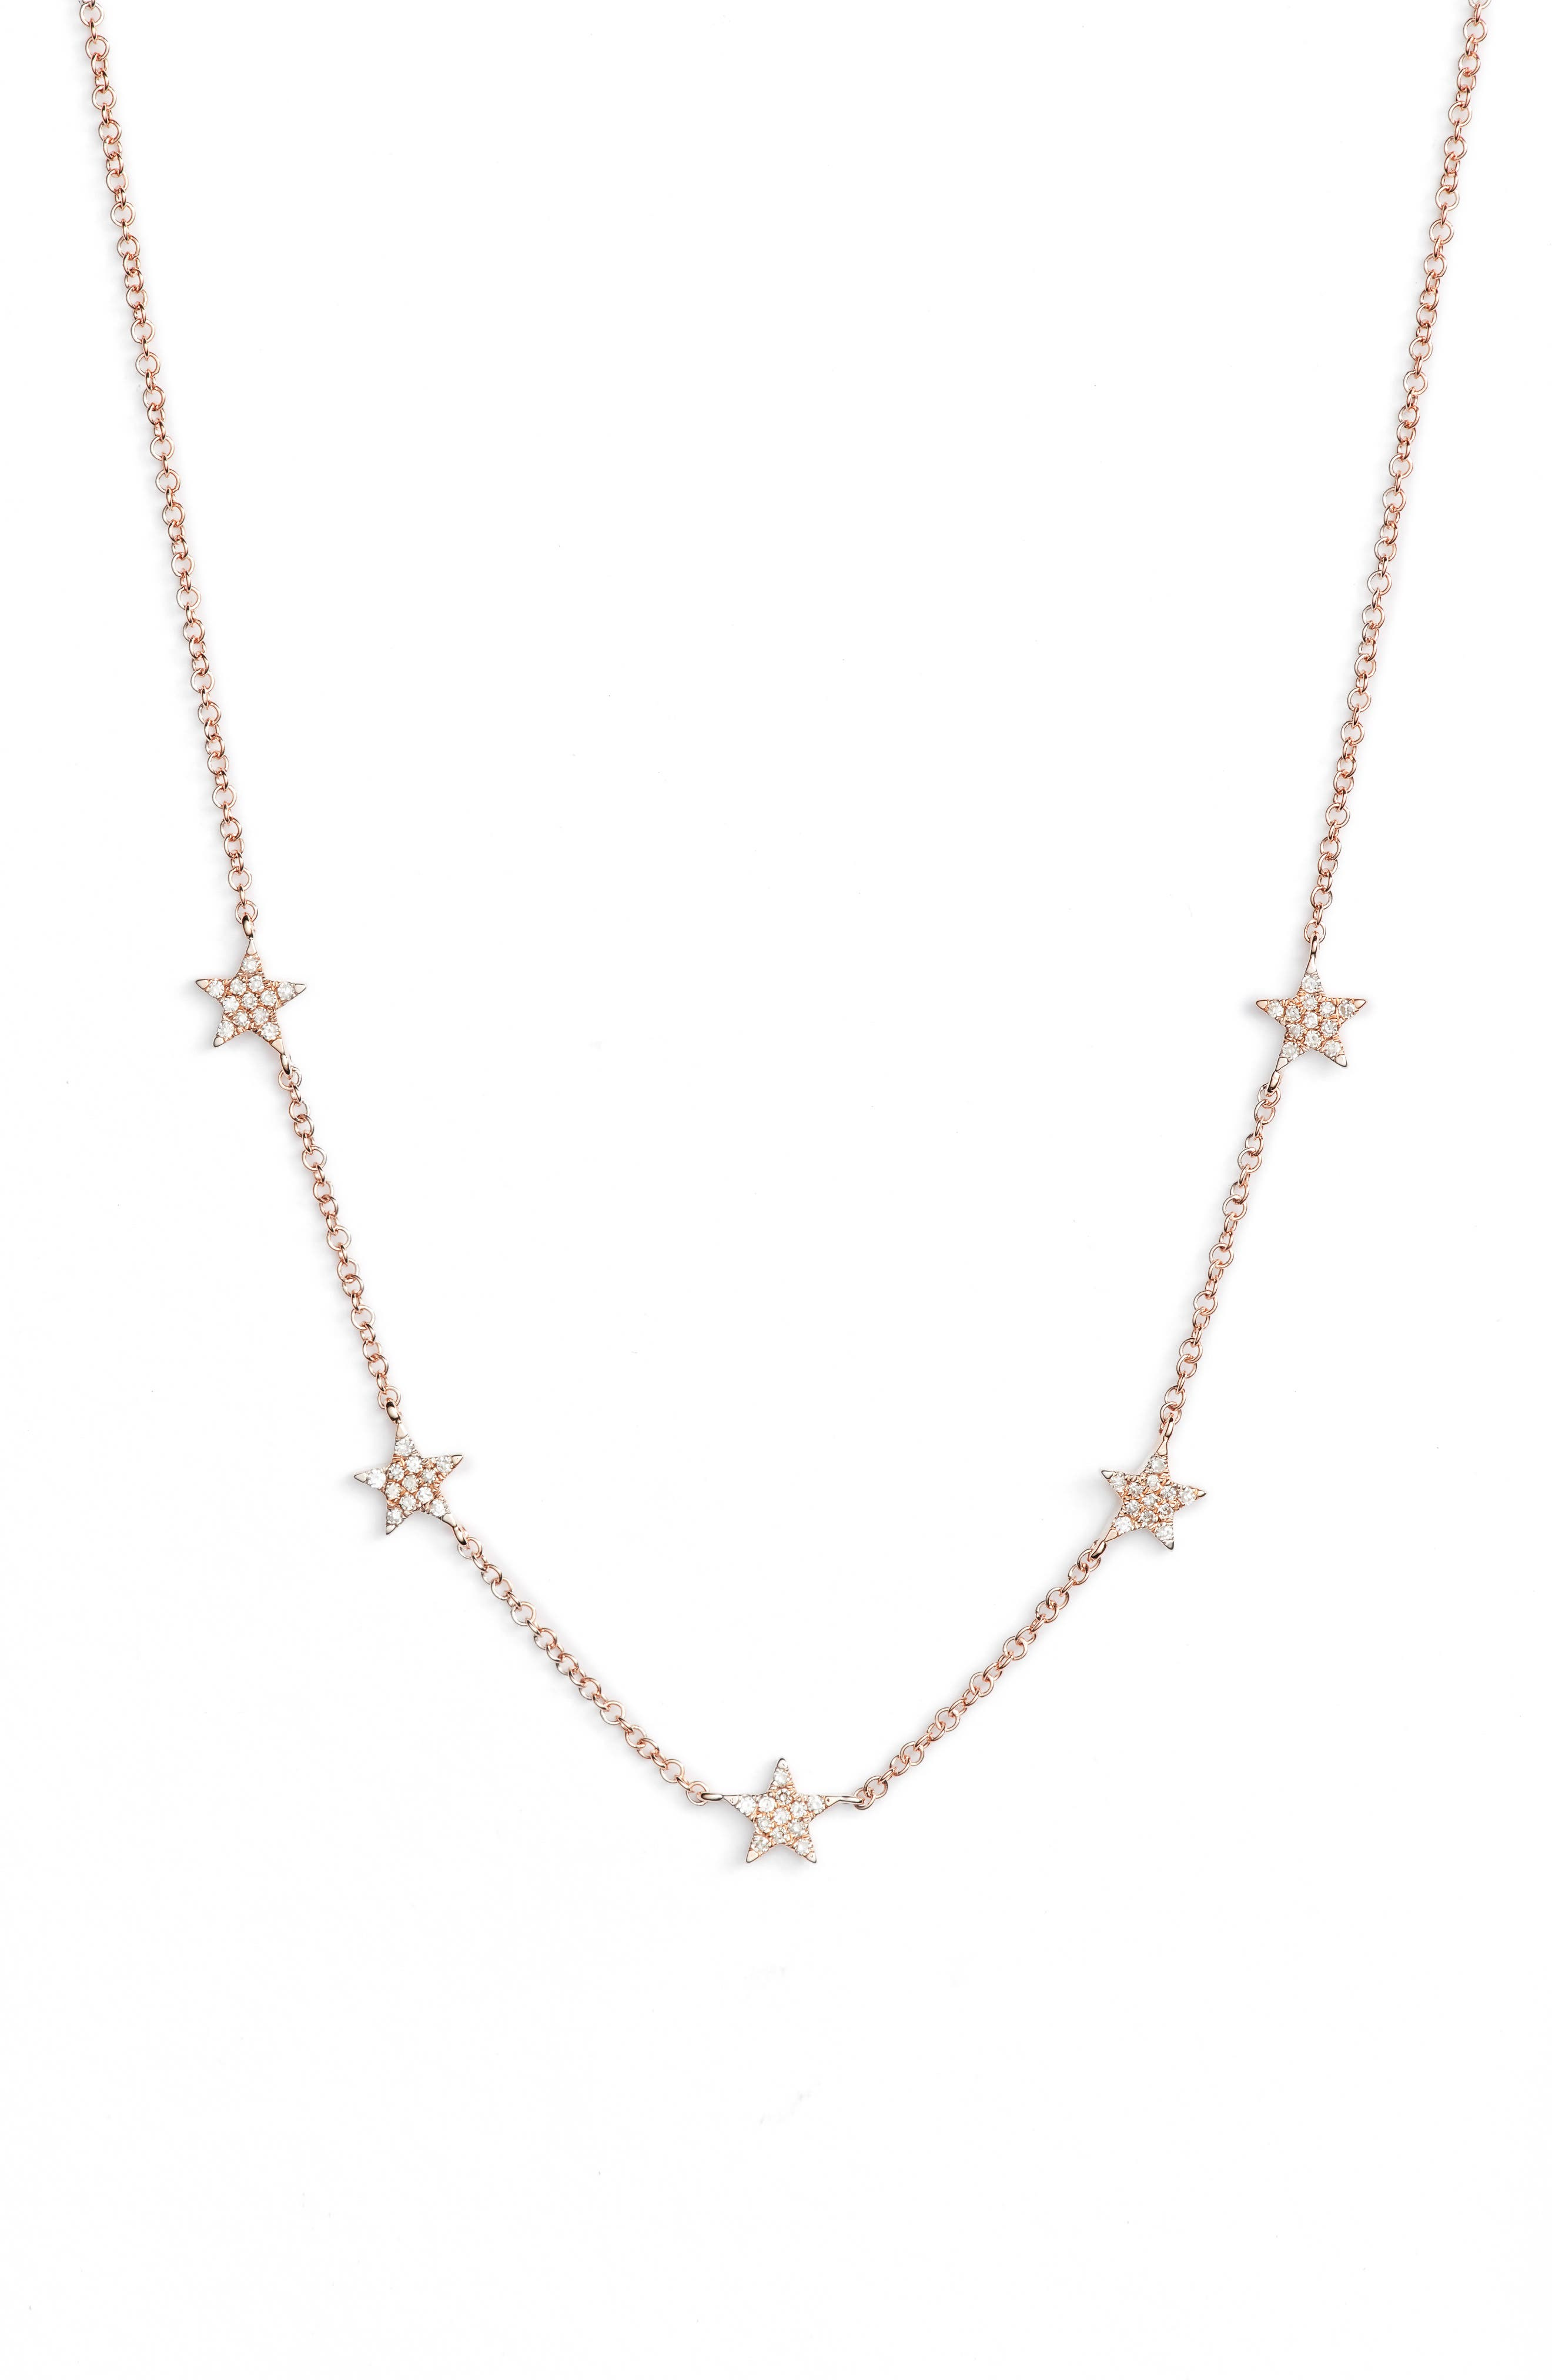 Five-Star Diamond Station Necklace,                             Main thumbnail 1, color,                             ROSE GOLD